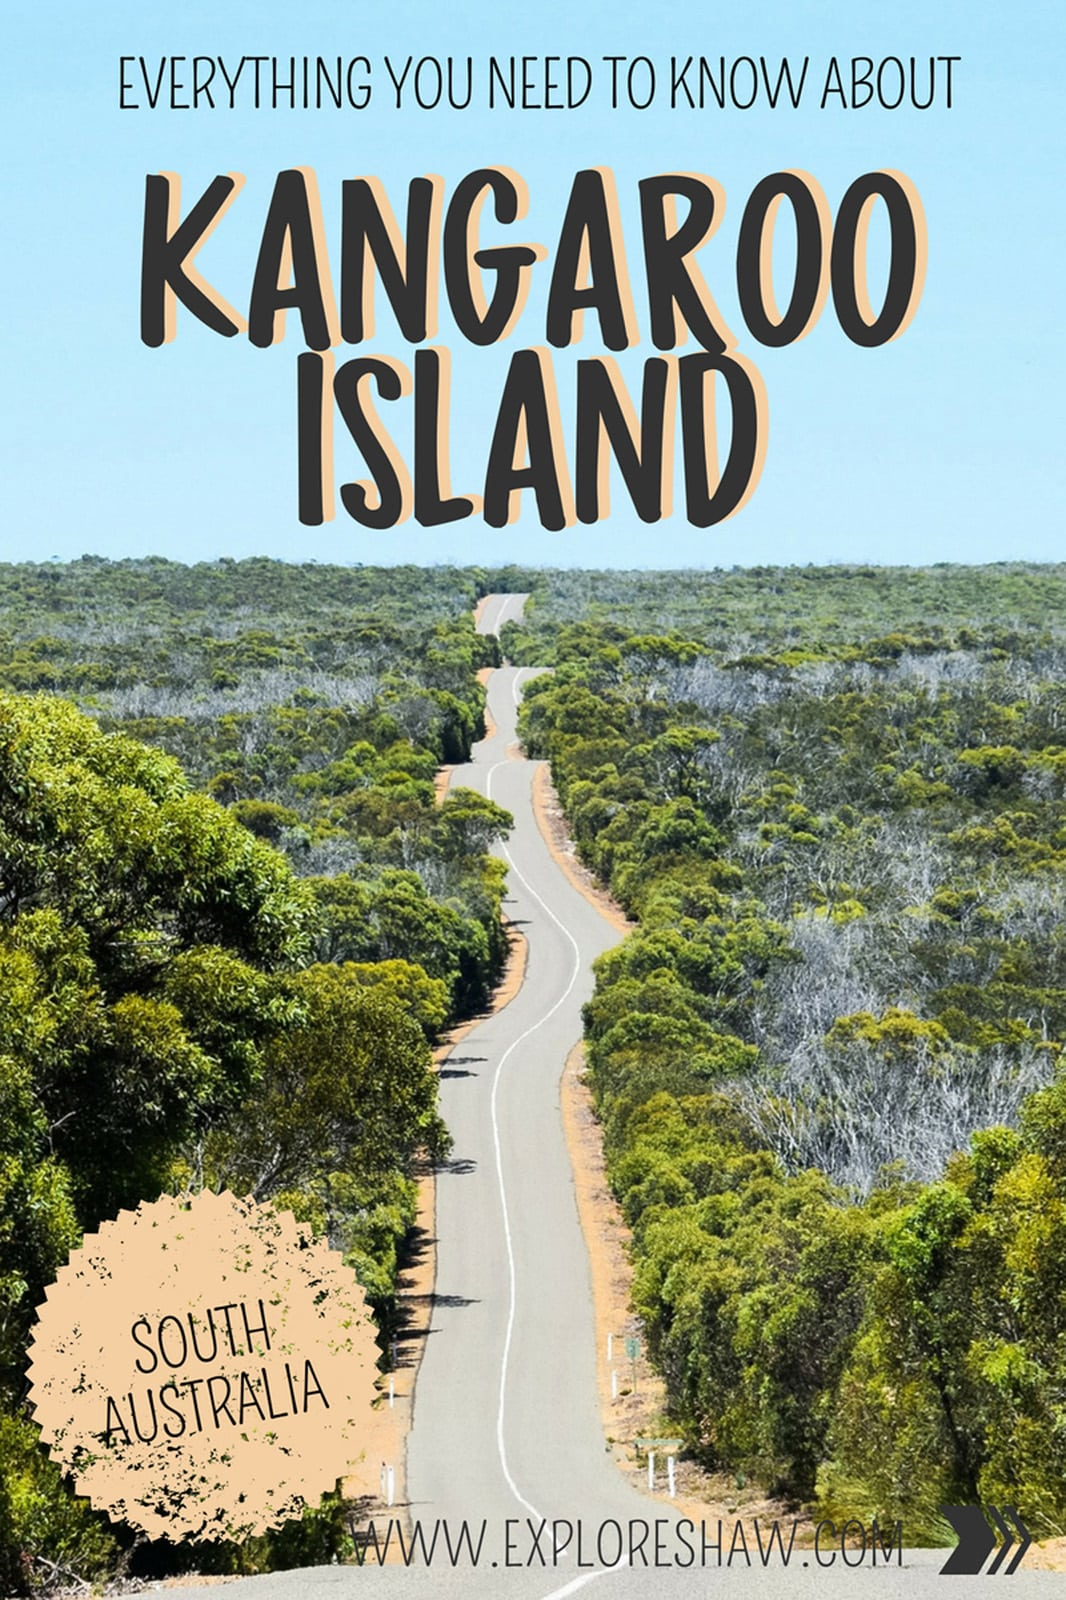 Everything you need to know to plan for your trip to Kangaroo Island. The can't miss attractions, best places to stay and all the top tips to getting around.#KangarooIsland #SouthAustralia #Australia